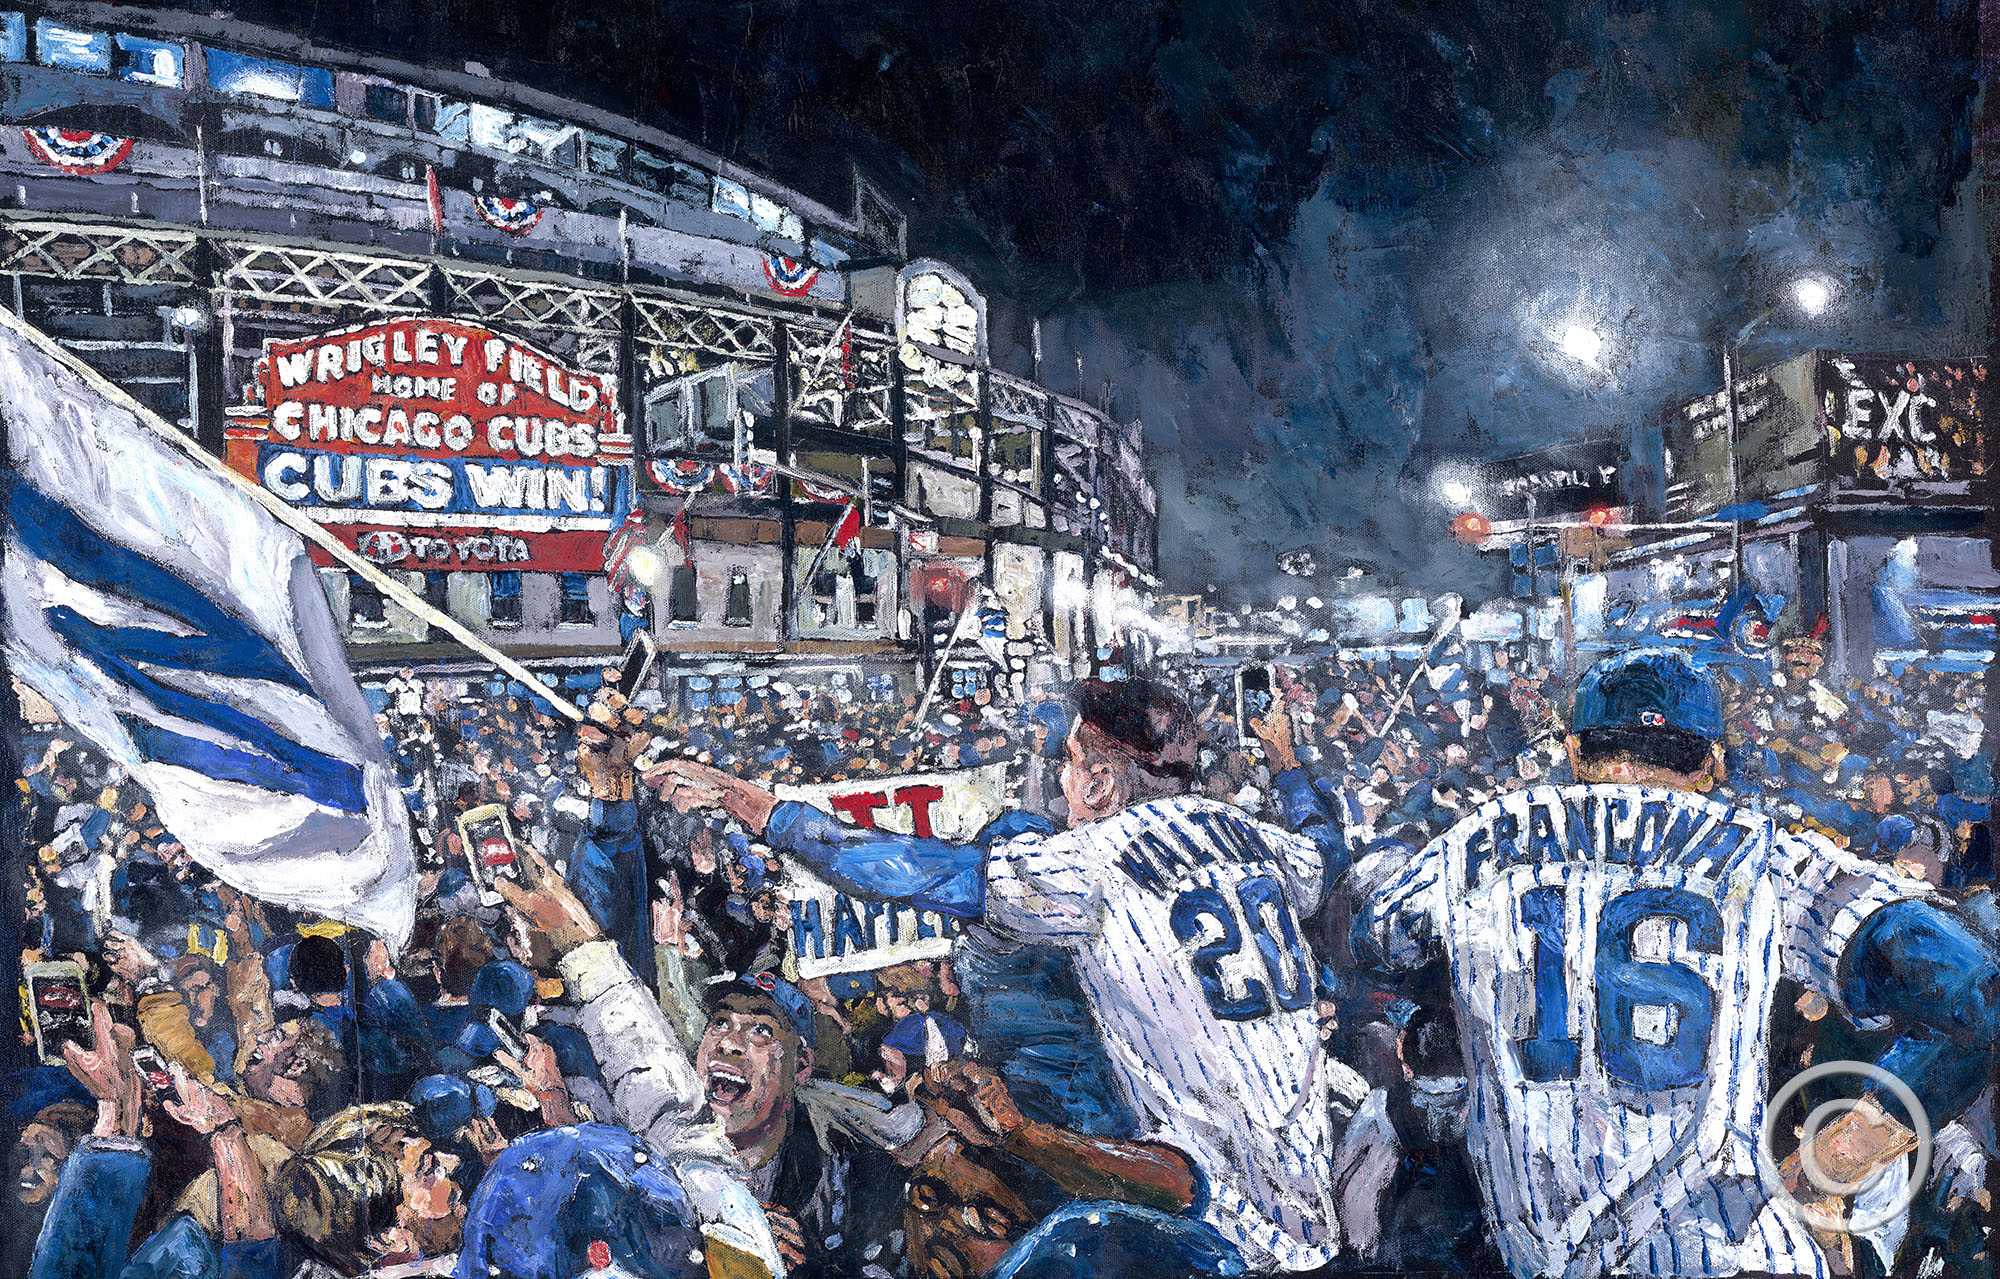 Timeout Chicago: A new exhibition depicts the Cubs World Series victory in paintings